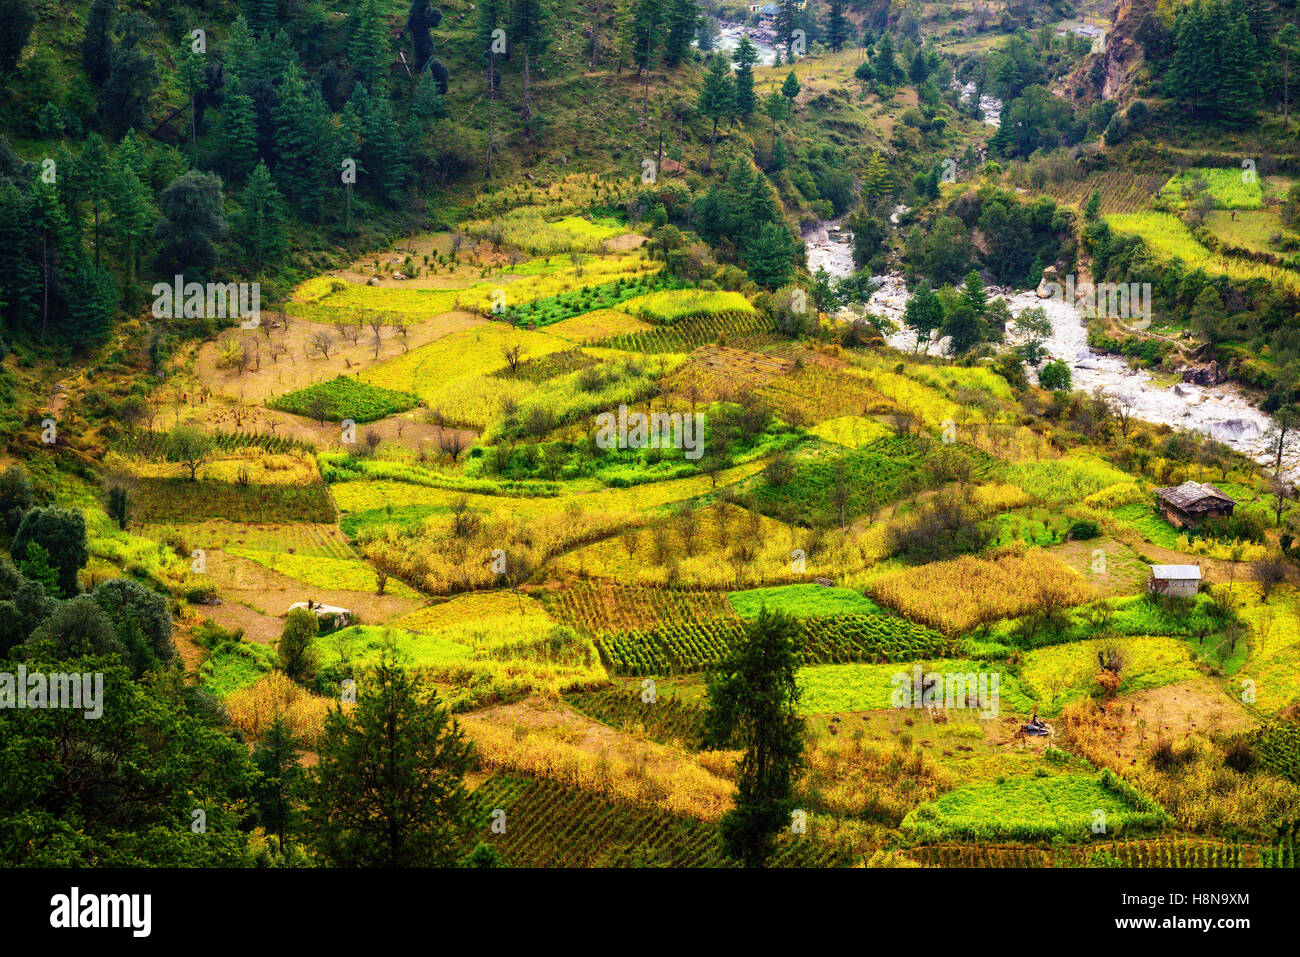 Traditional agriculture groung in Himalayas - Stock Image